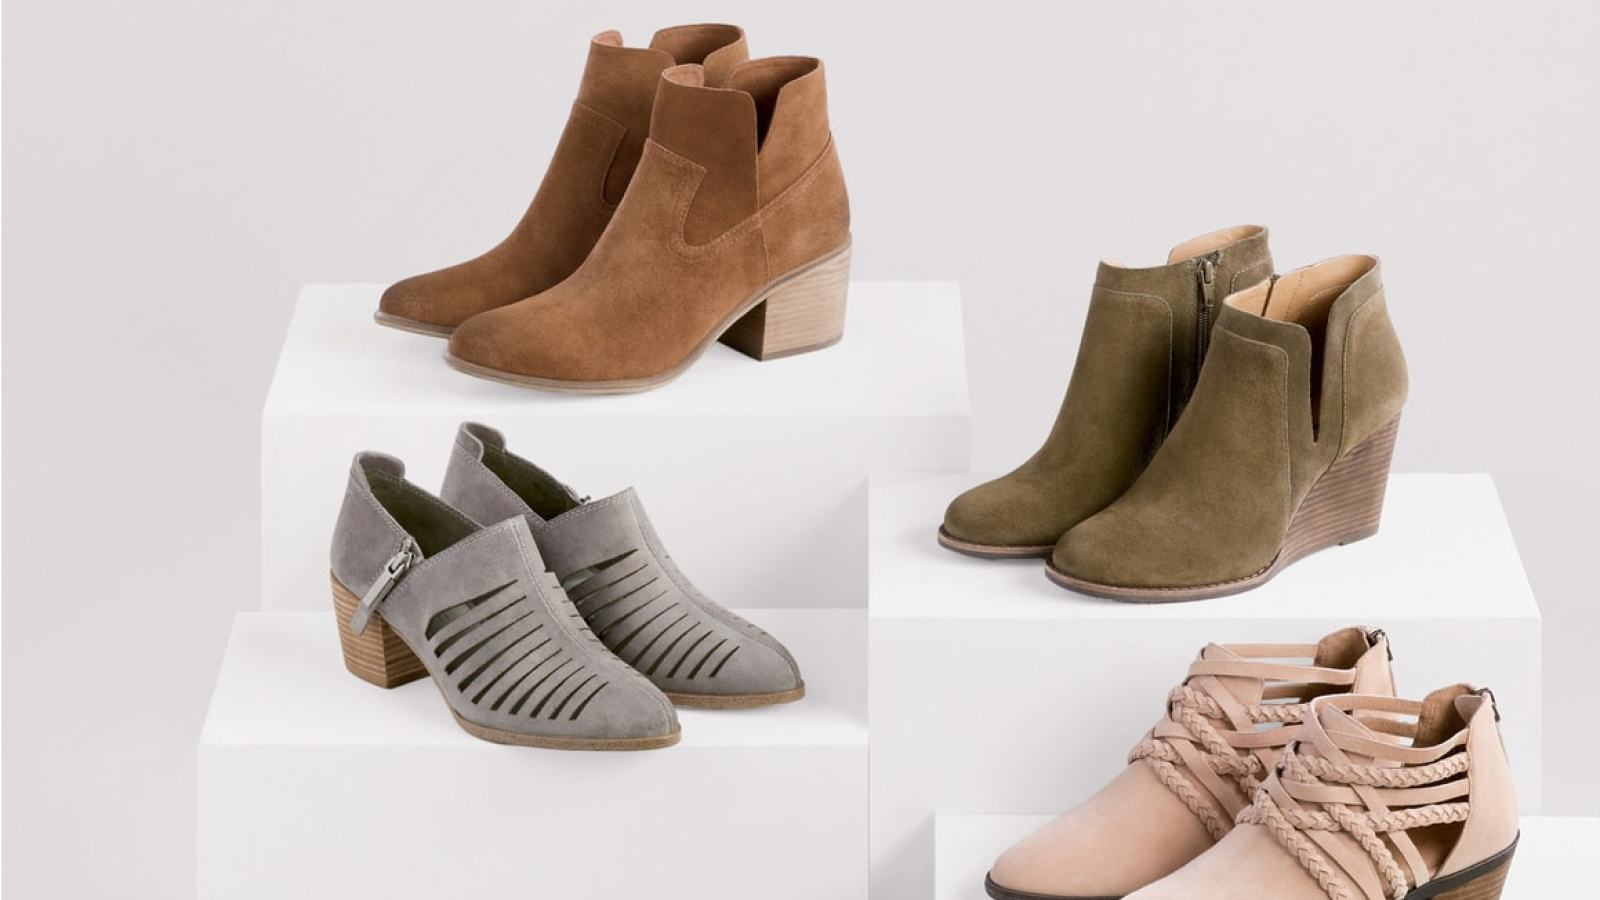 8c344e0caa59 Nordstrom Is Selling Lucky Brand Booties for Under  100 — Buy Them Fast!